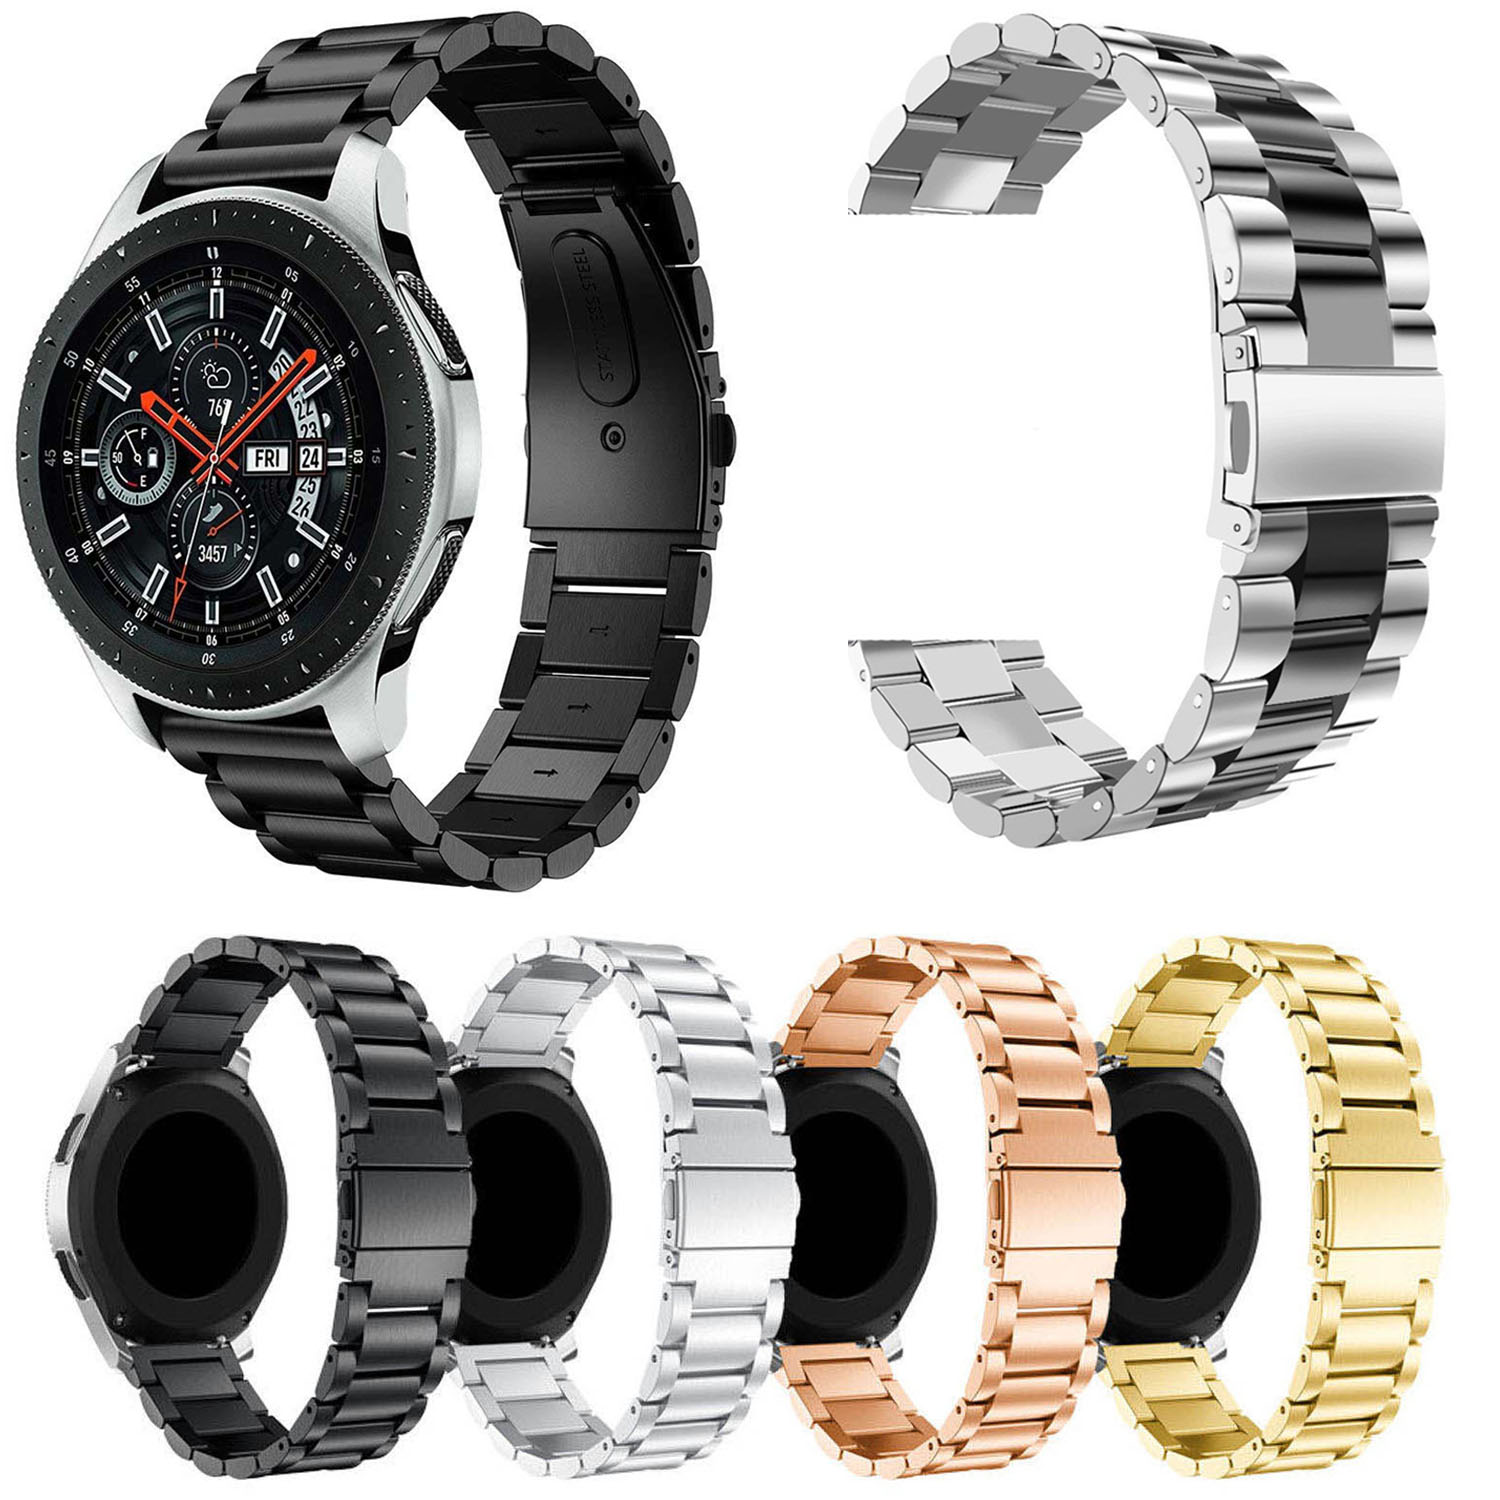 22mm Stainless Steel Watch Bands For Samsung Galaxy 46mm Bracelet Strap For Samsung Gear S3 Classic/Frontier Sport Band